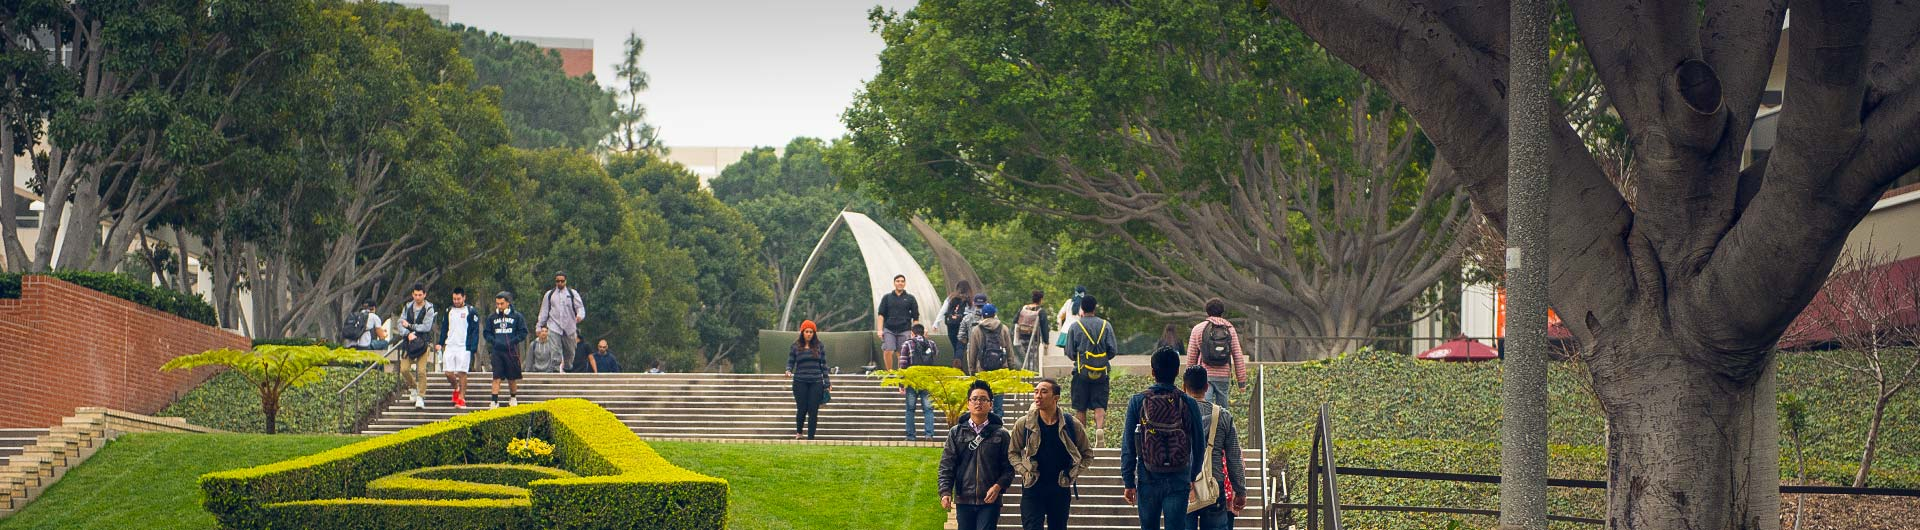 CSULB Campus Steps with Students